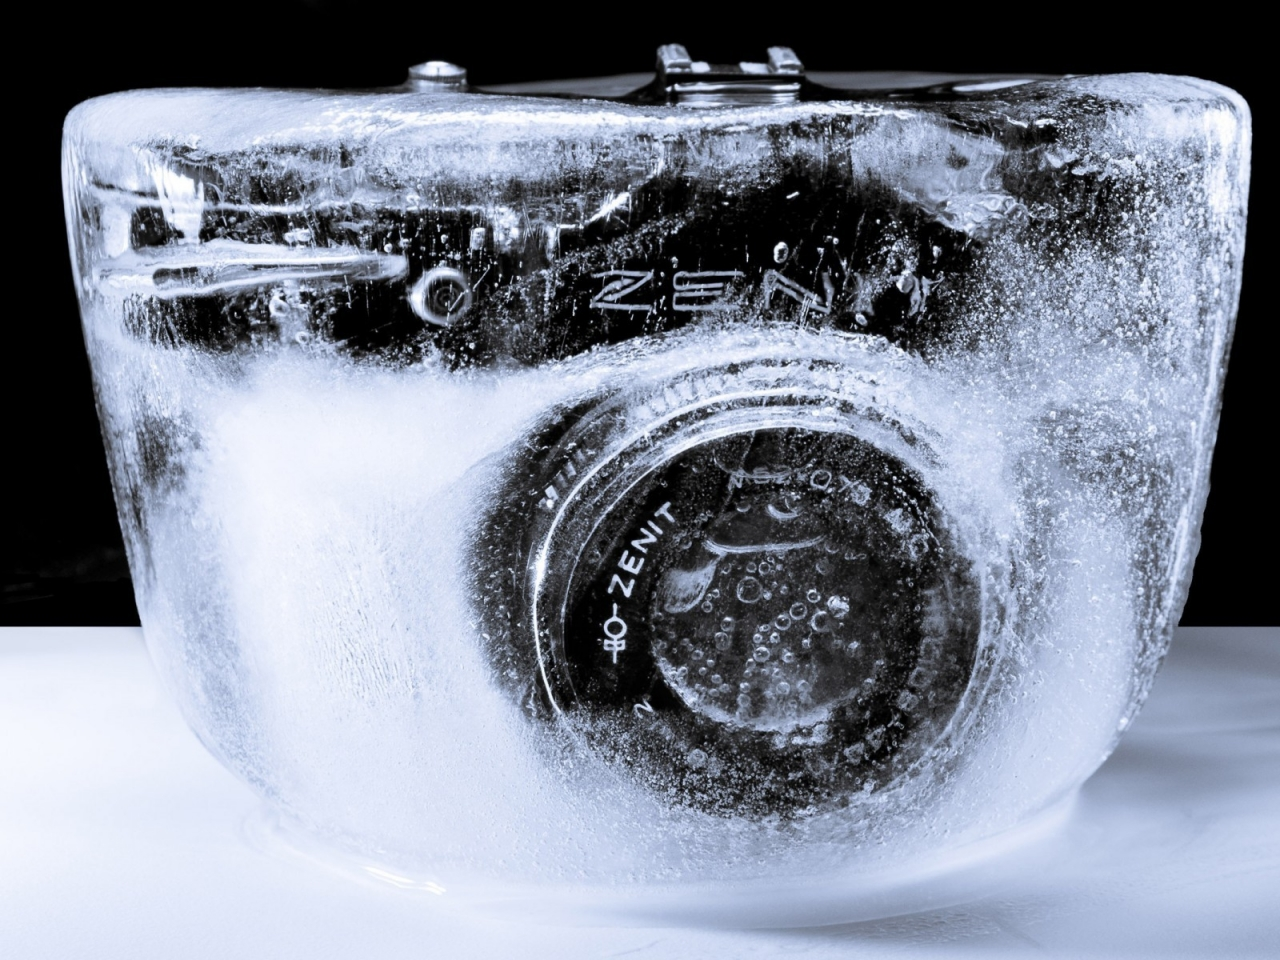 Ice Zenit Camera for 1280 x 960 resolution